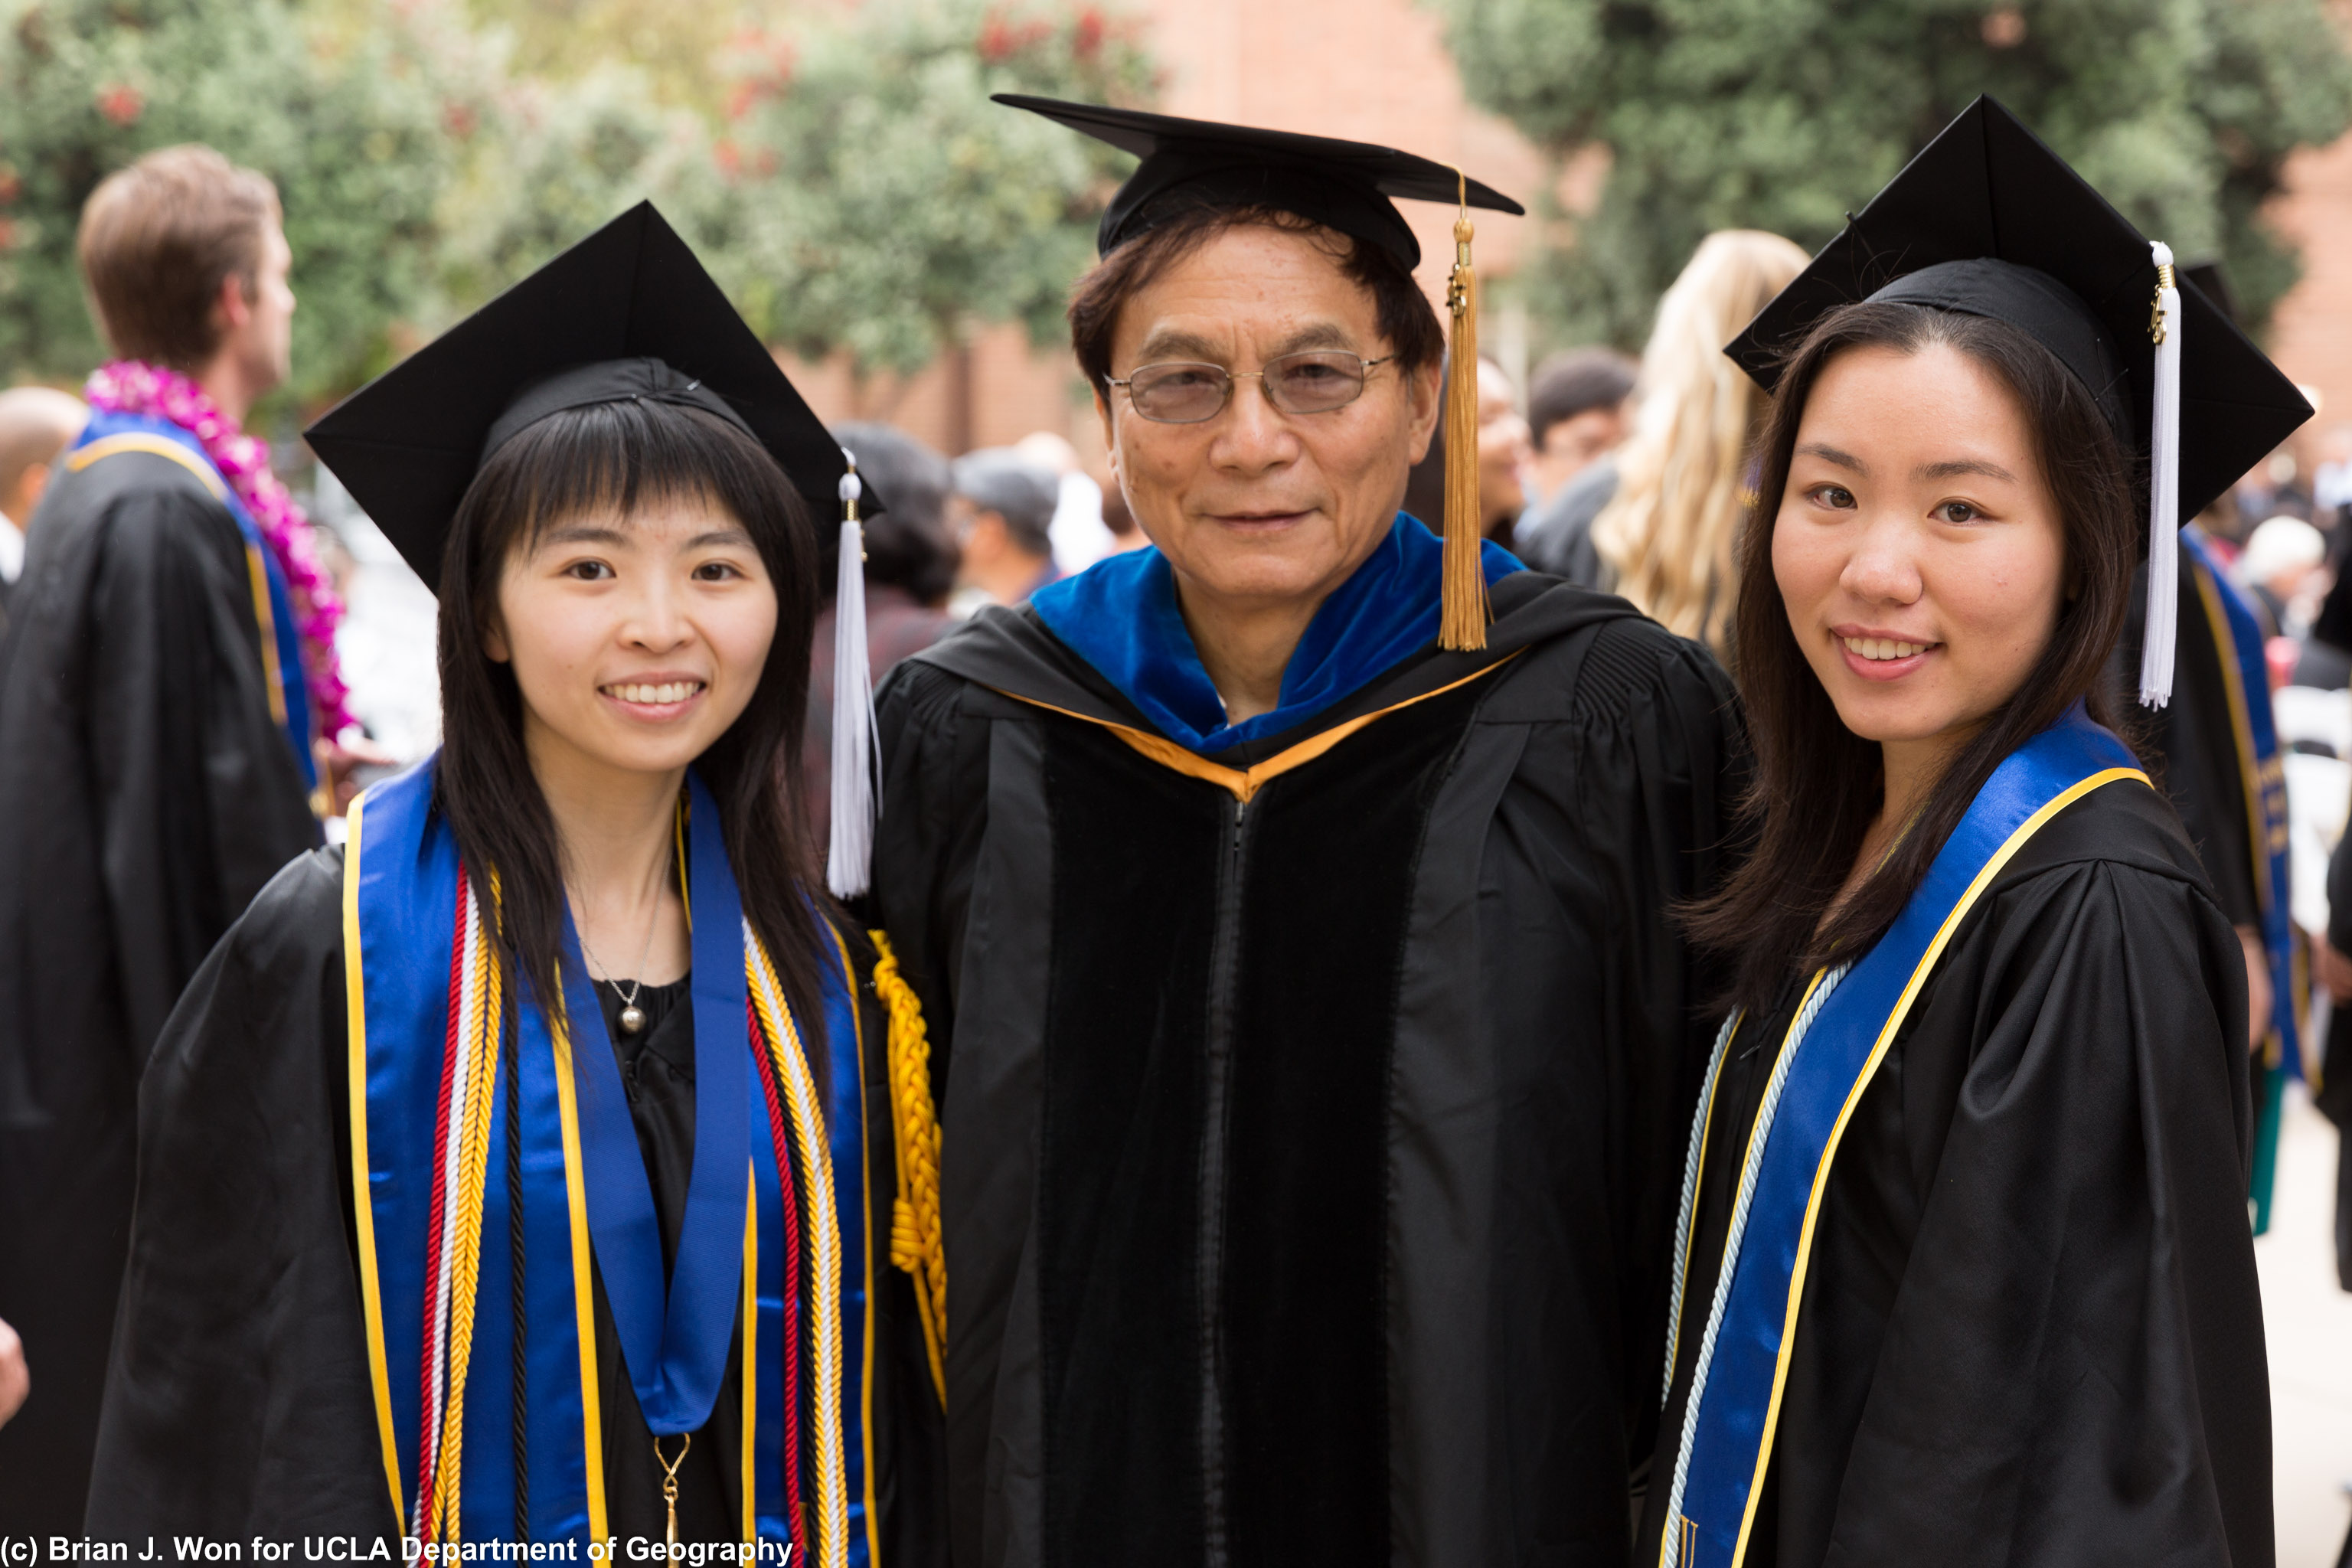 Professor Xue with students